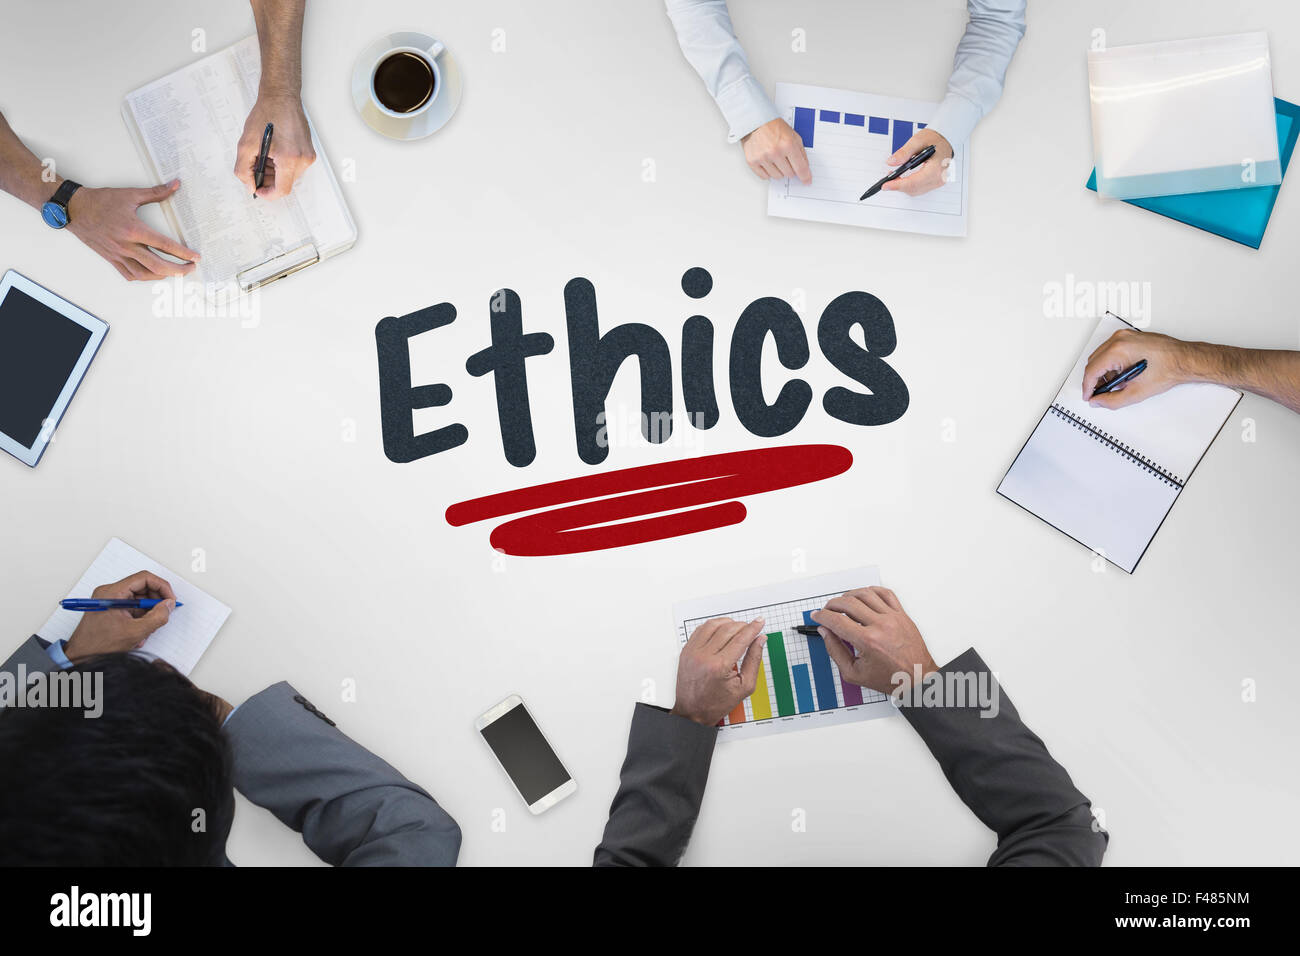 Ethics against business meeting - Stock Image